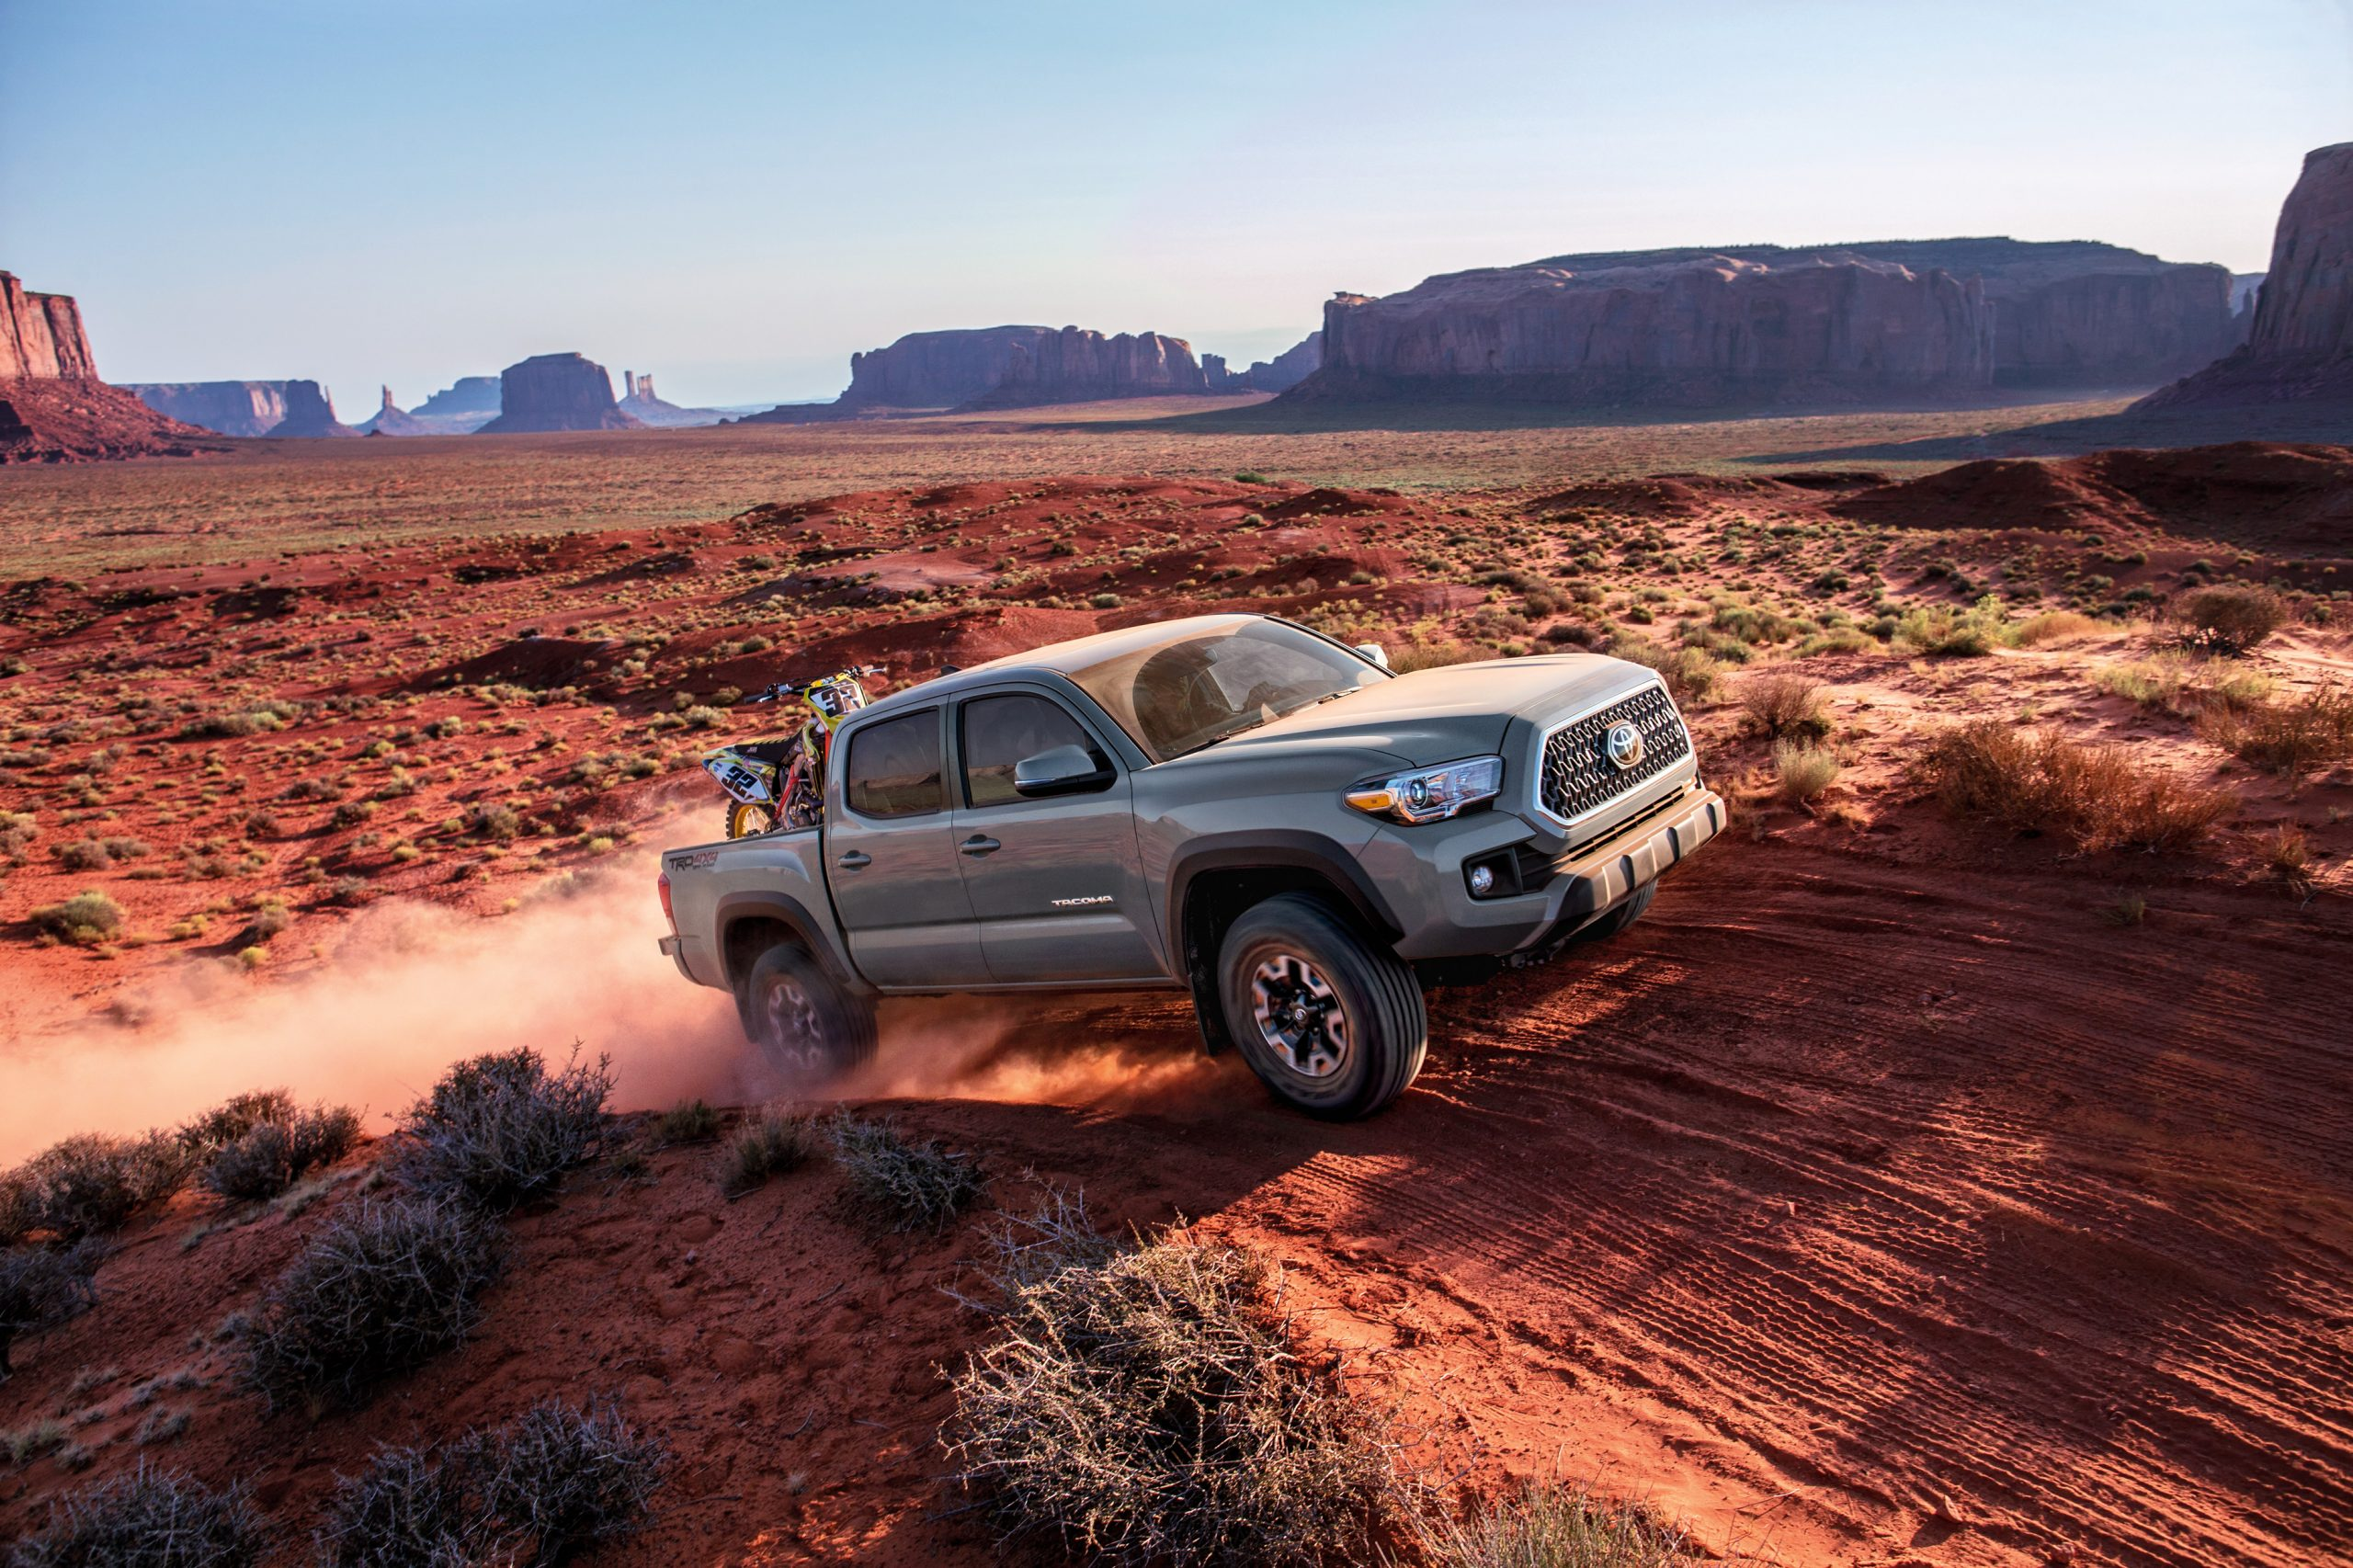 Occasion beaucage blogue top 5 camions usagées 2018 toyota tacoma 2018